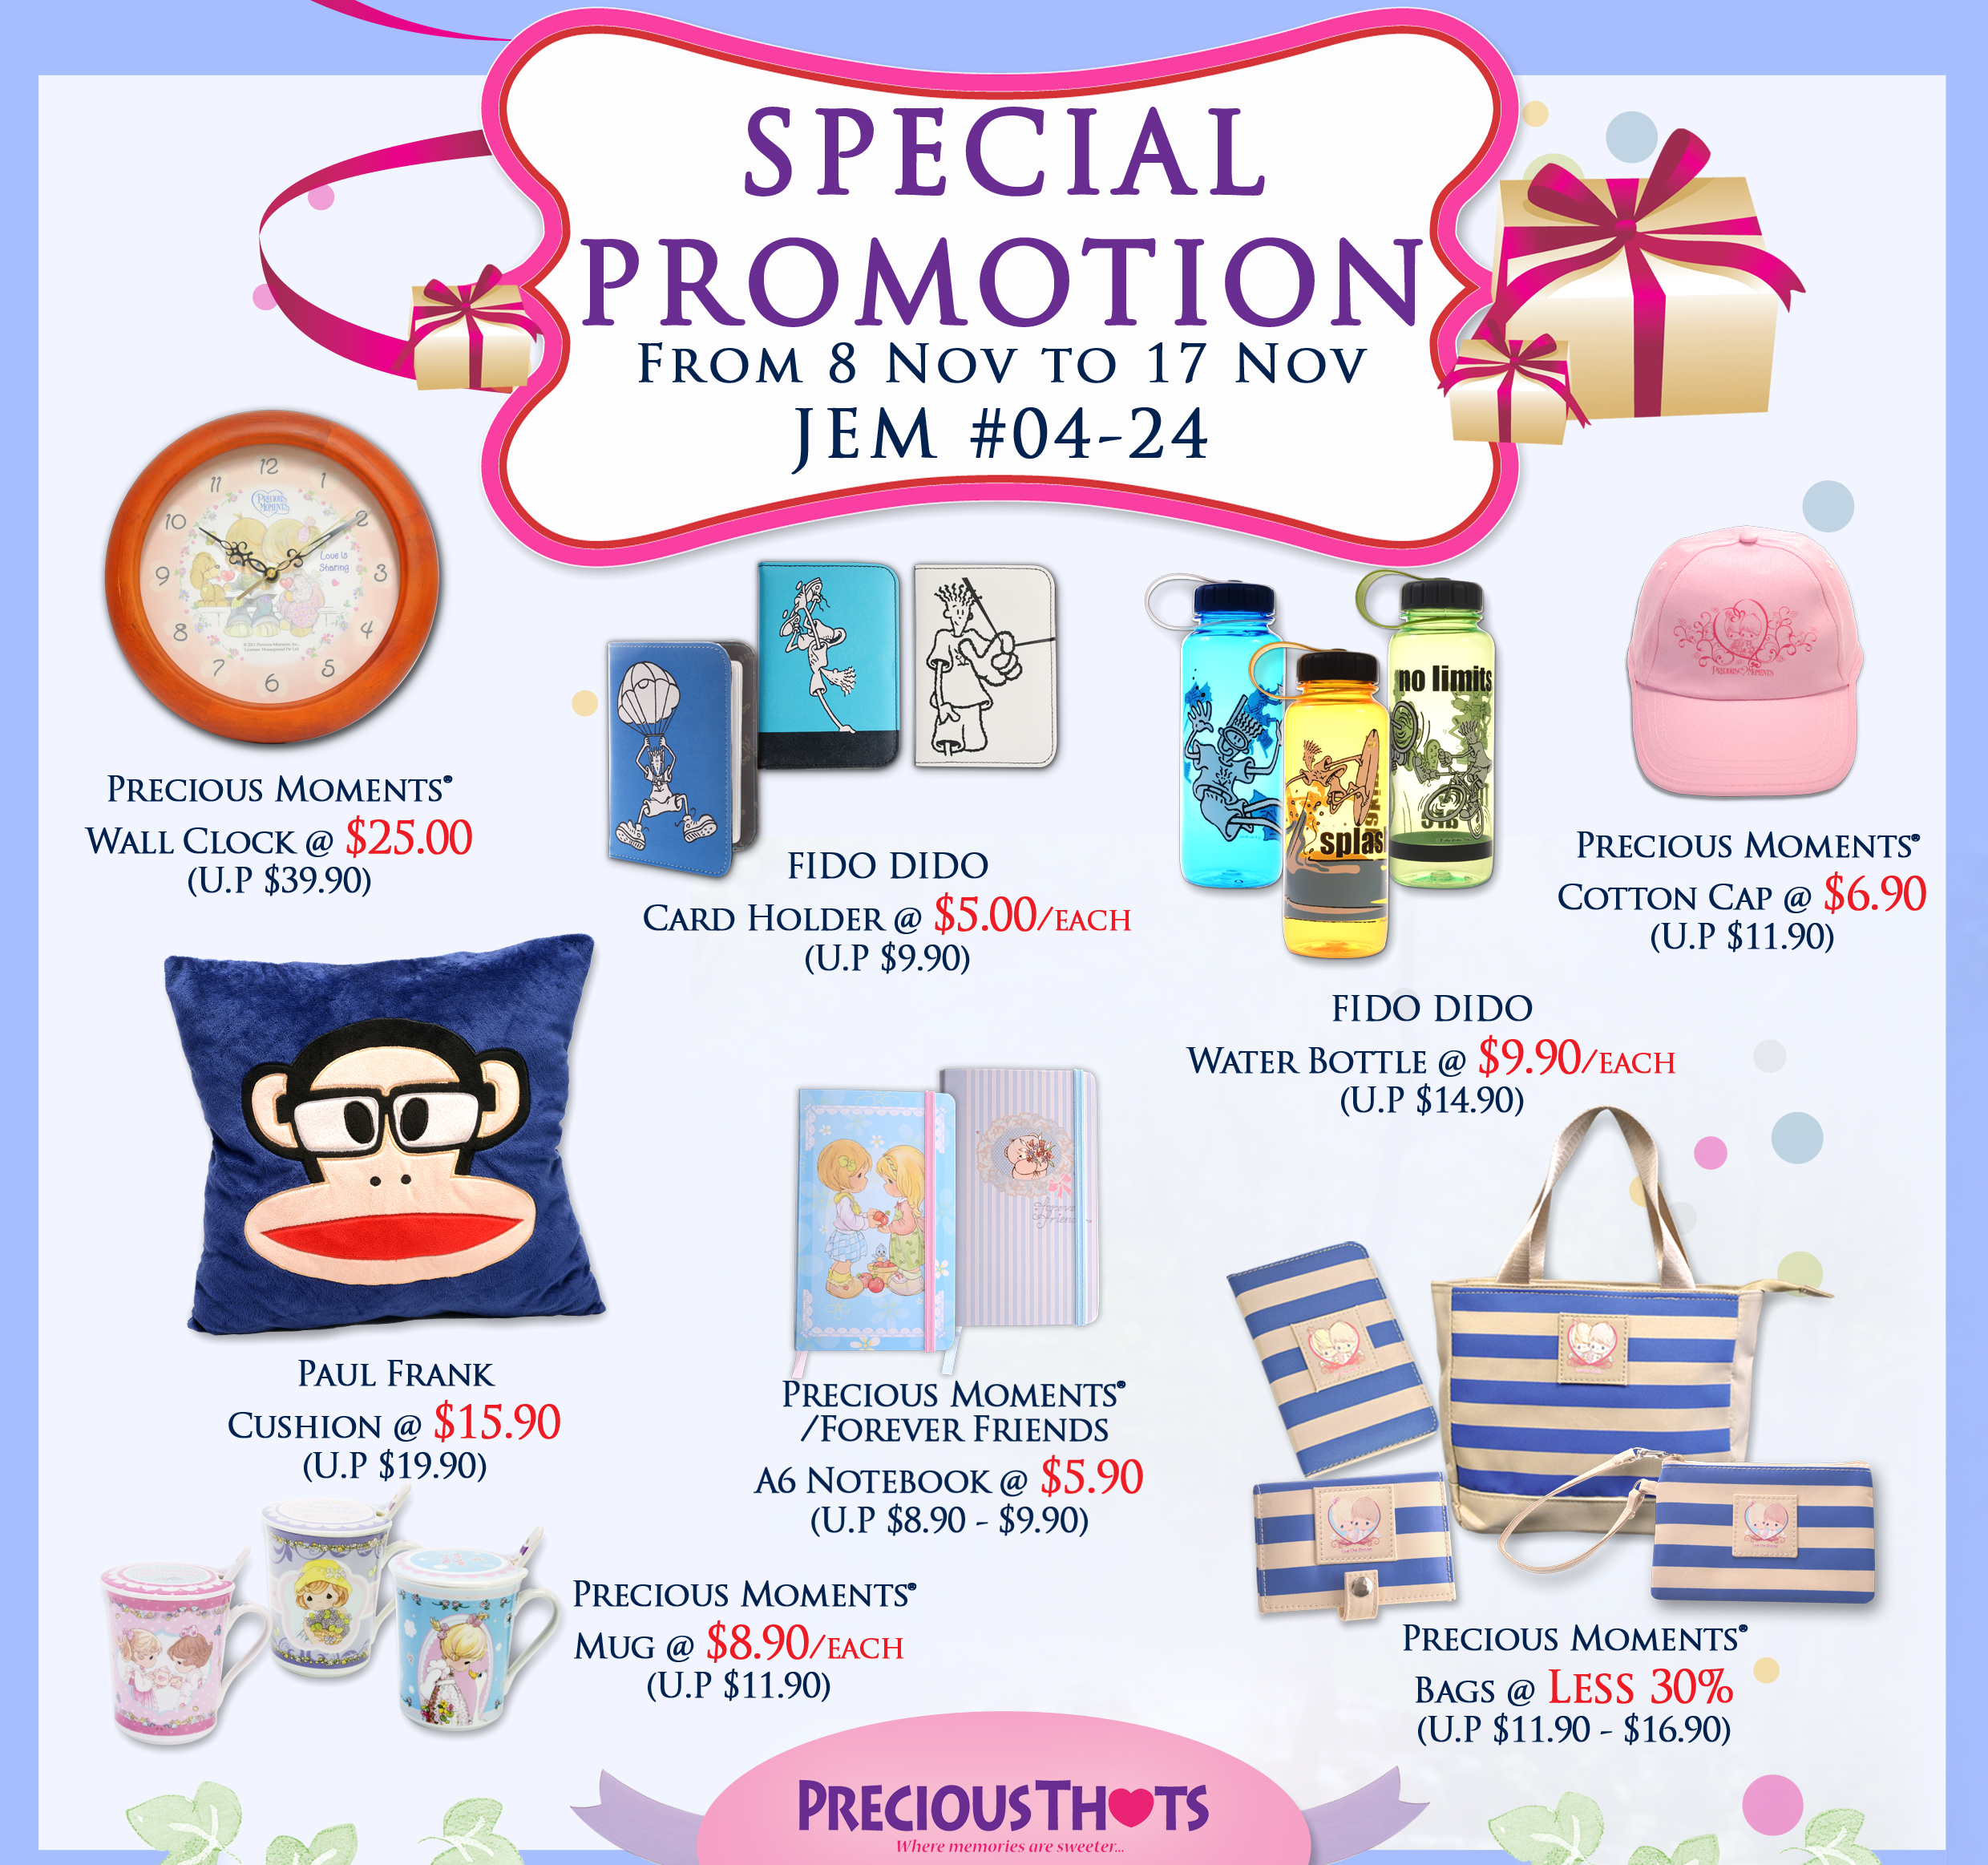 Precious Thots Special Promotion November 2013: Paul Frank Cushion @ $15.90 & More